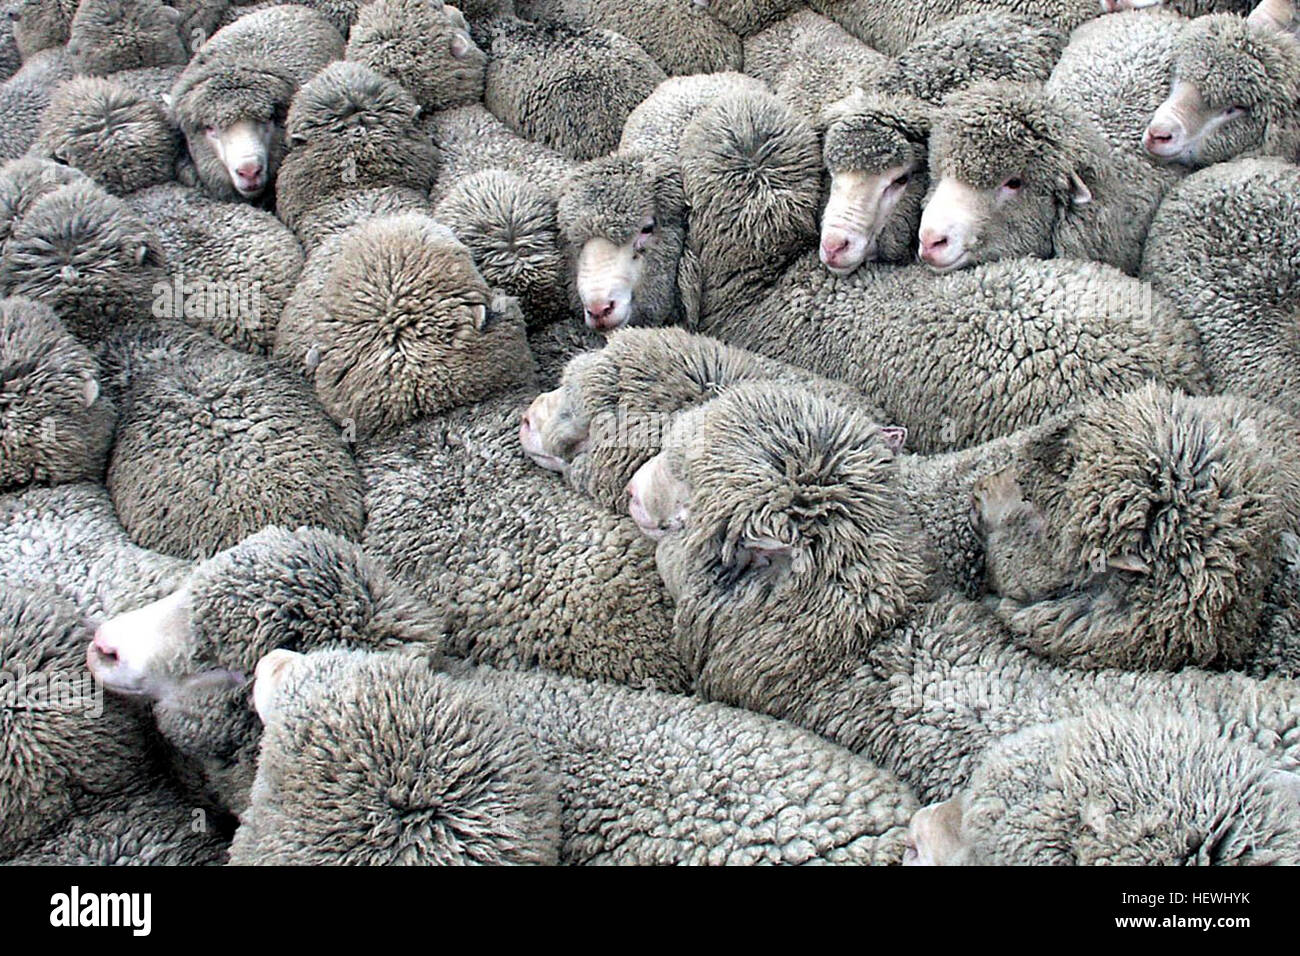 The Merino is an economically influential breed of sheep prized for its wool. The breed origins are from Spain, - Stock Image